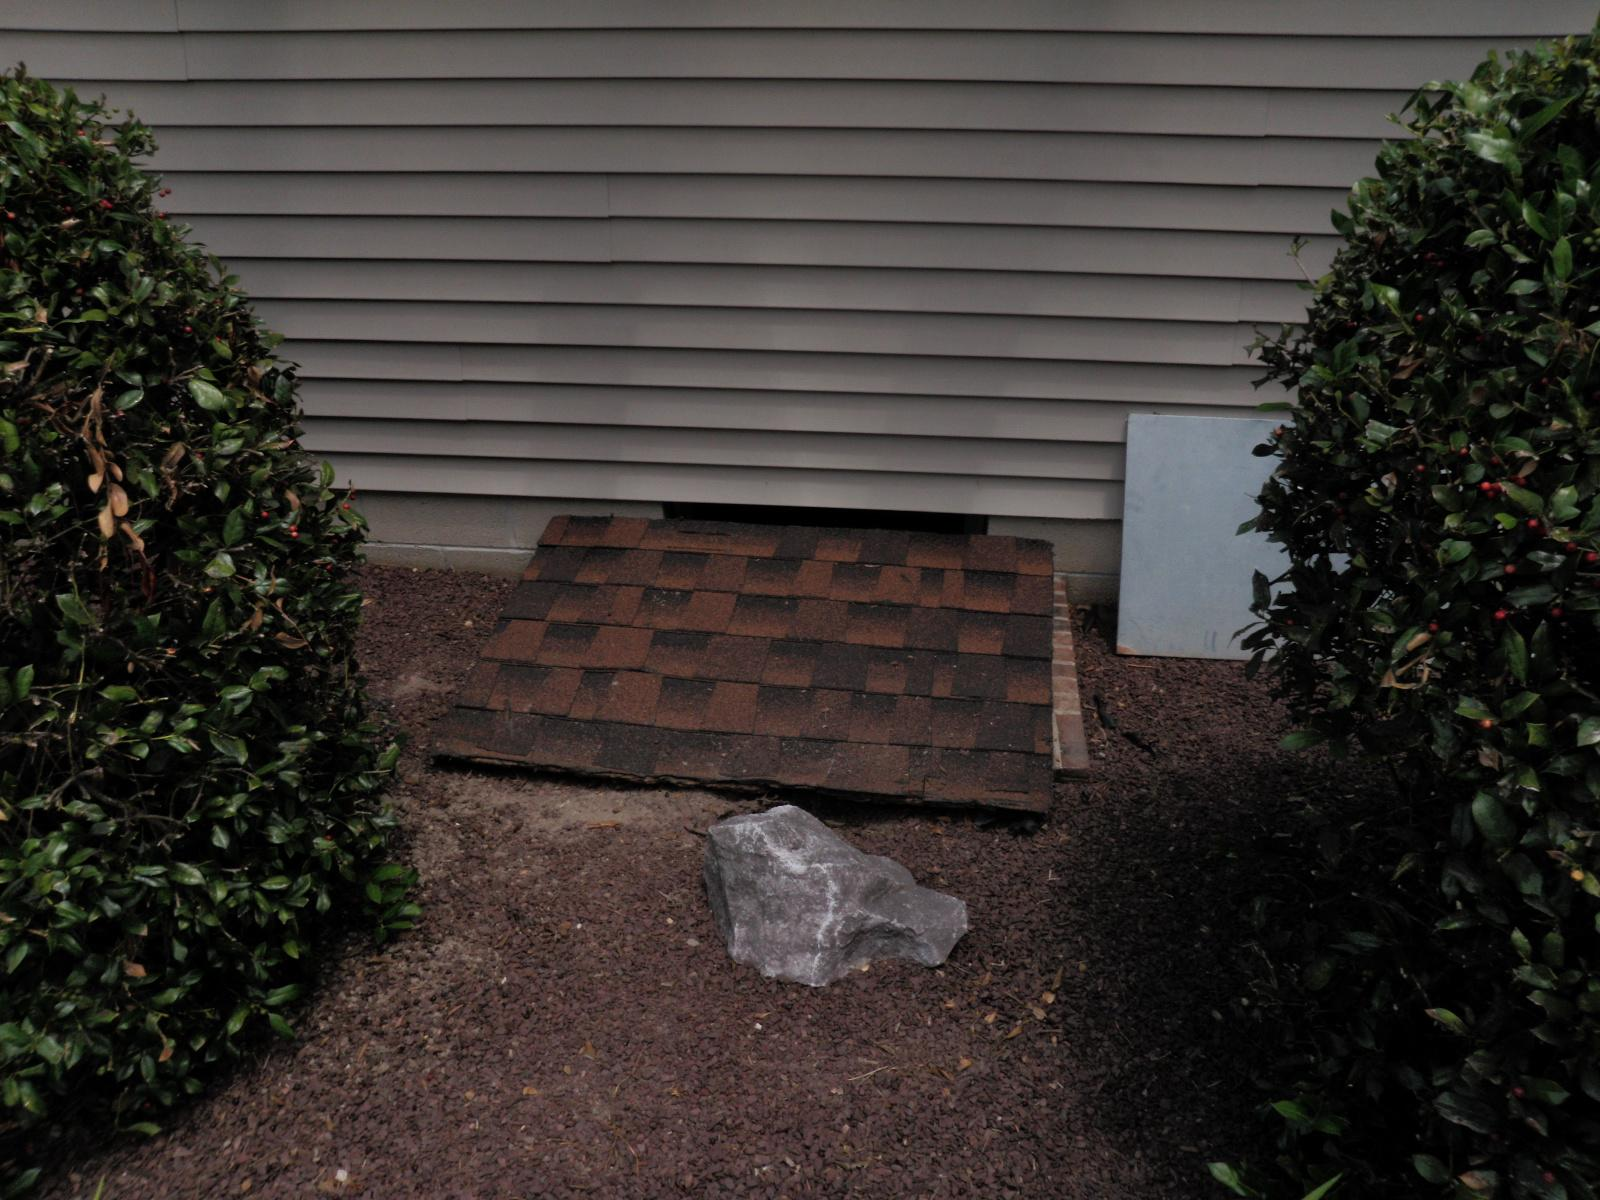 Seaford, Delaware Turtl Crawlspace Entrance System Install - Before Photo